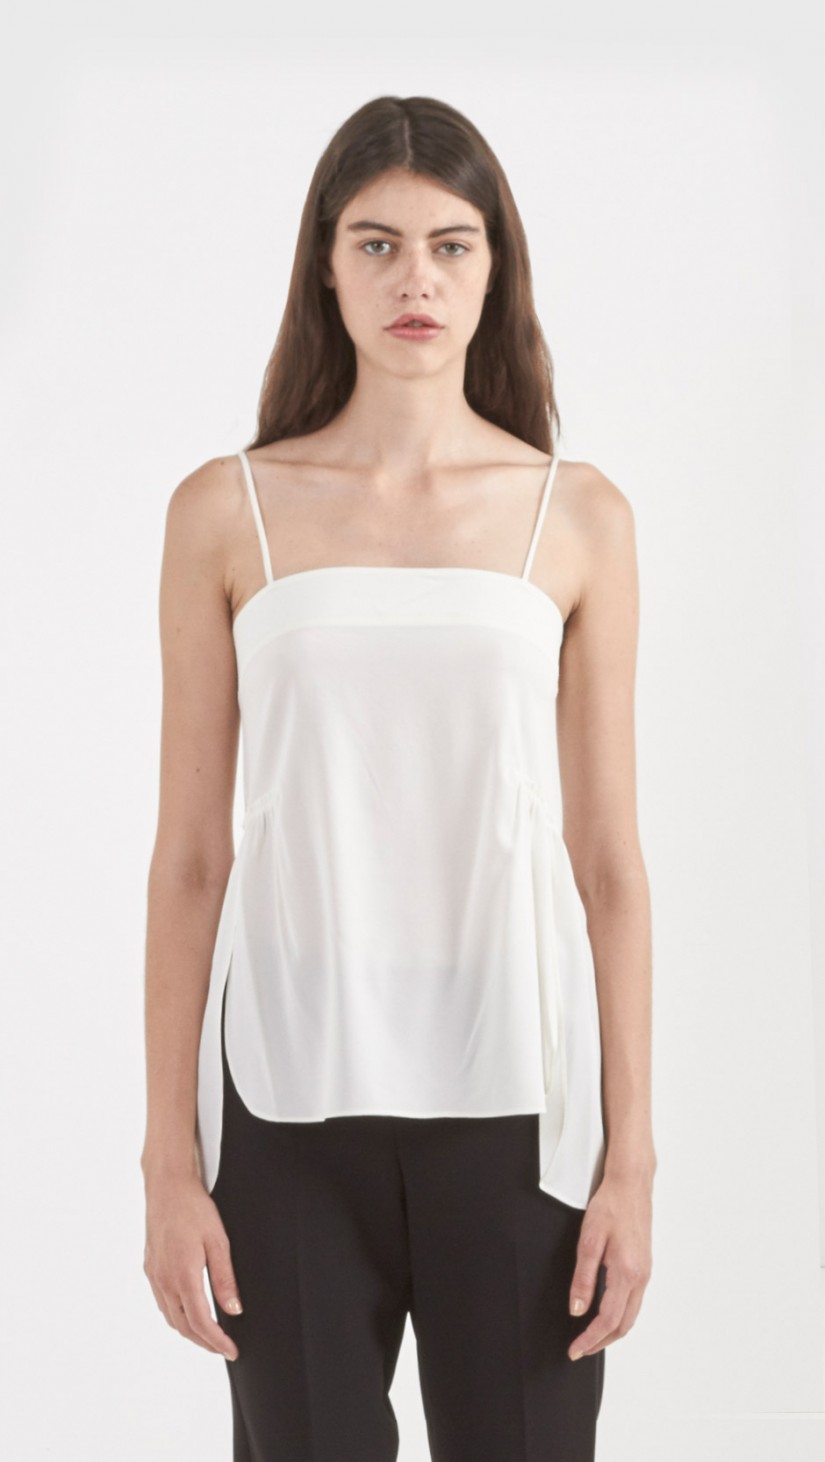 Clearance Collections Helmut Lang Silk High-Low Top Cheap Prices Authentic With Mastercard Cheap Price Quality Original Clearance Cheap Online SwYI3jvi